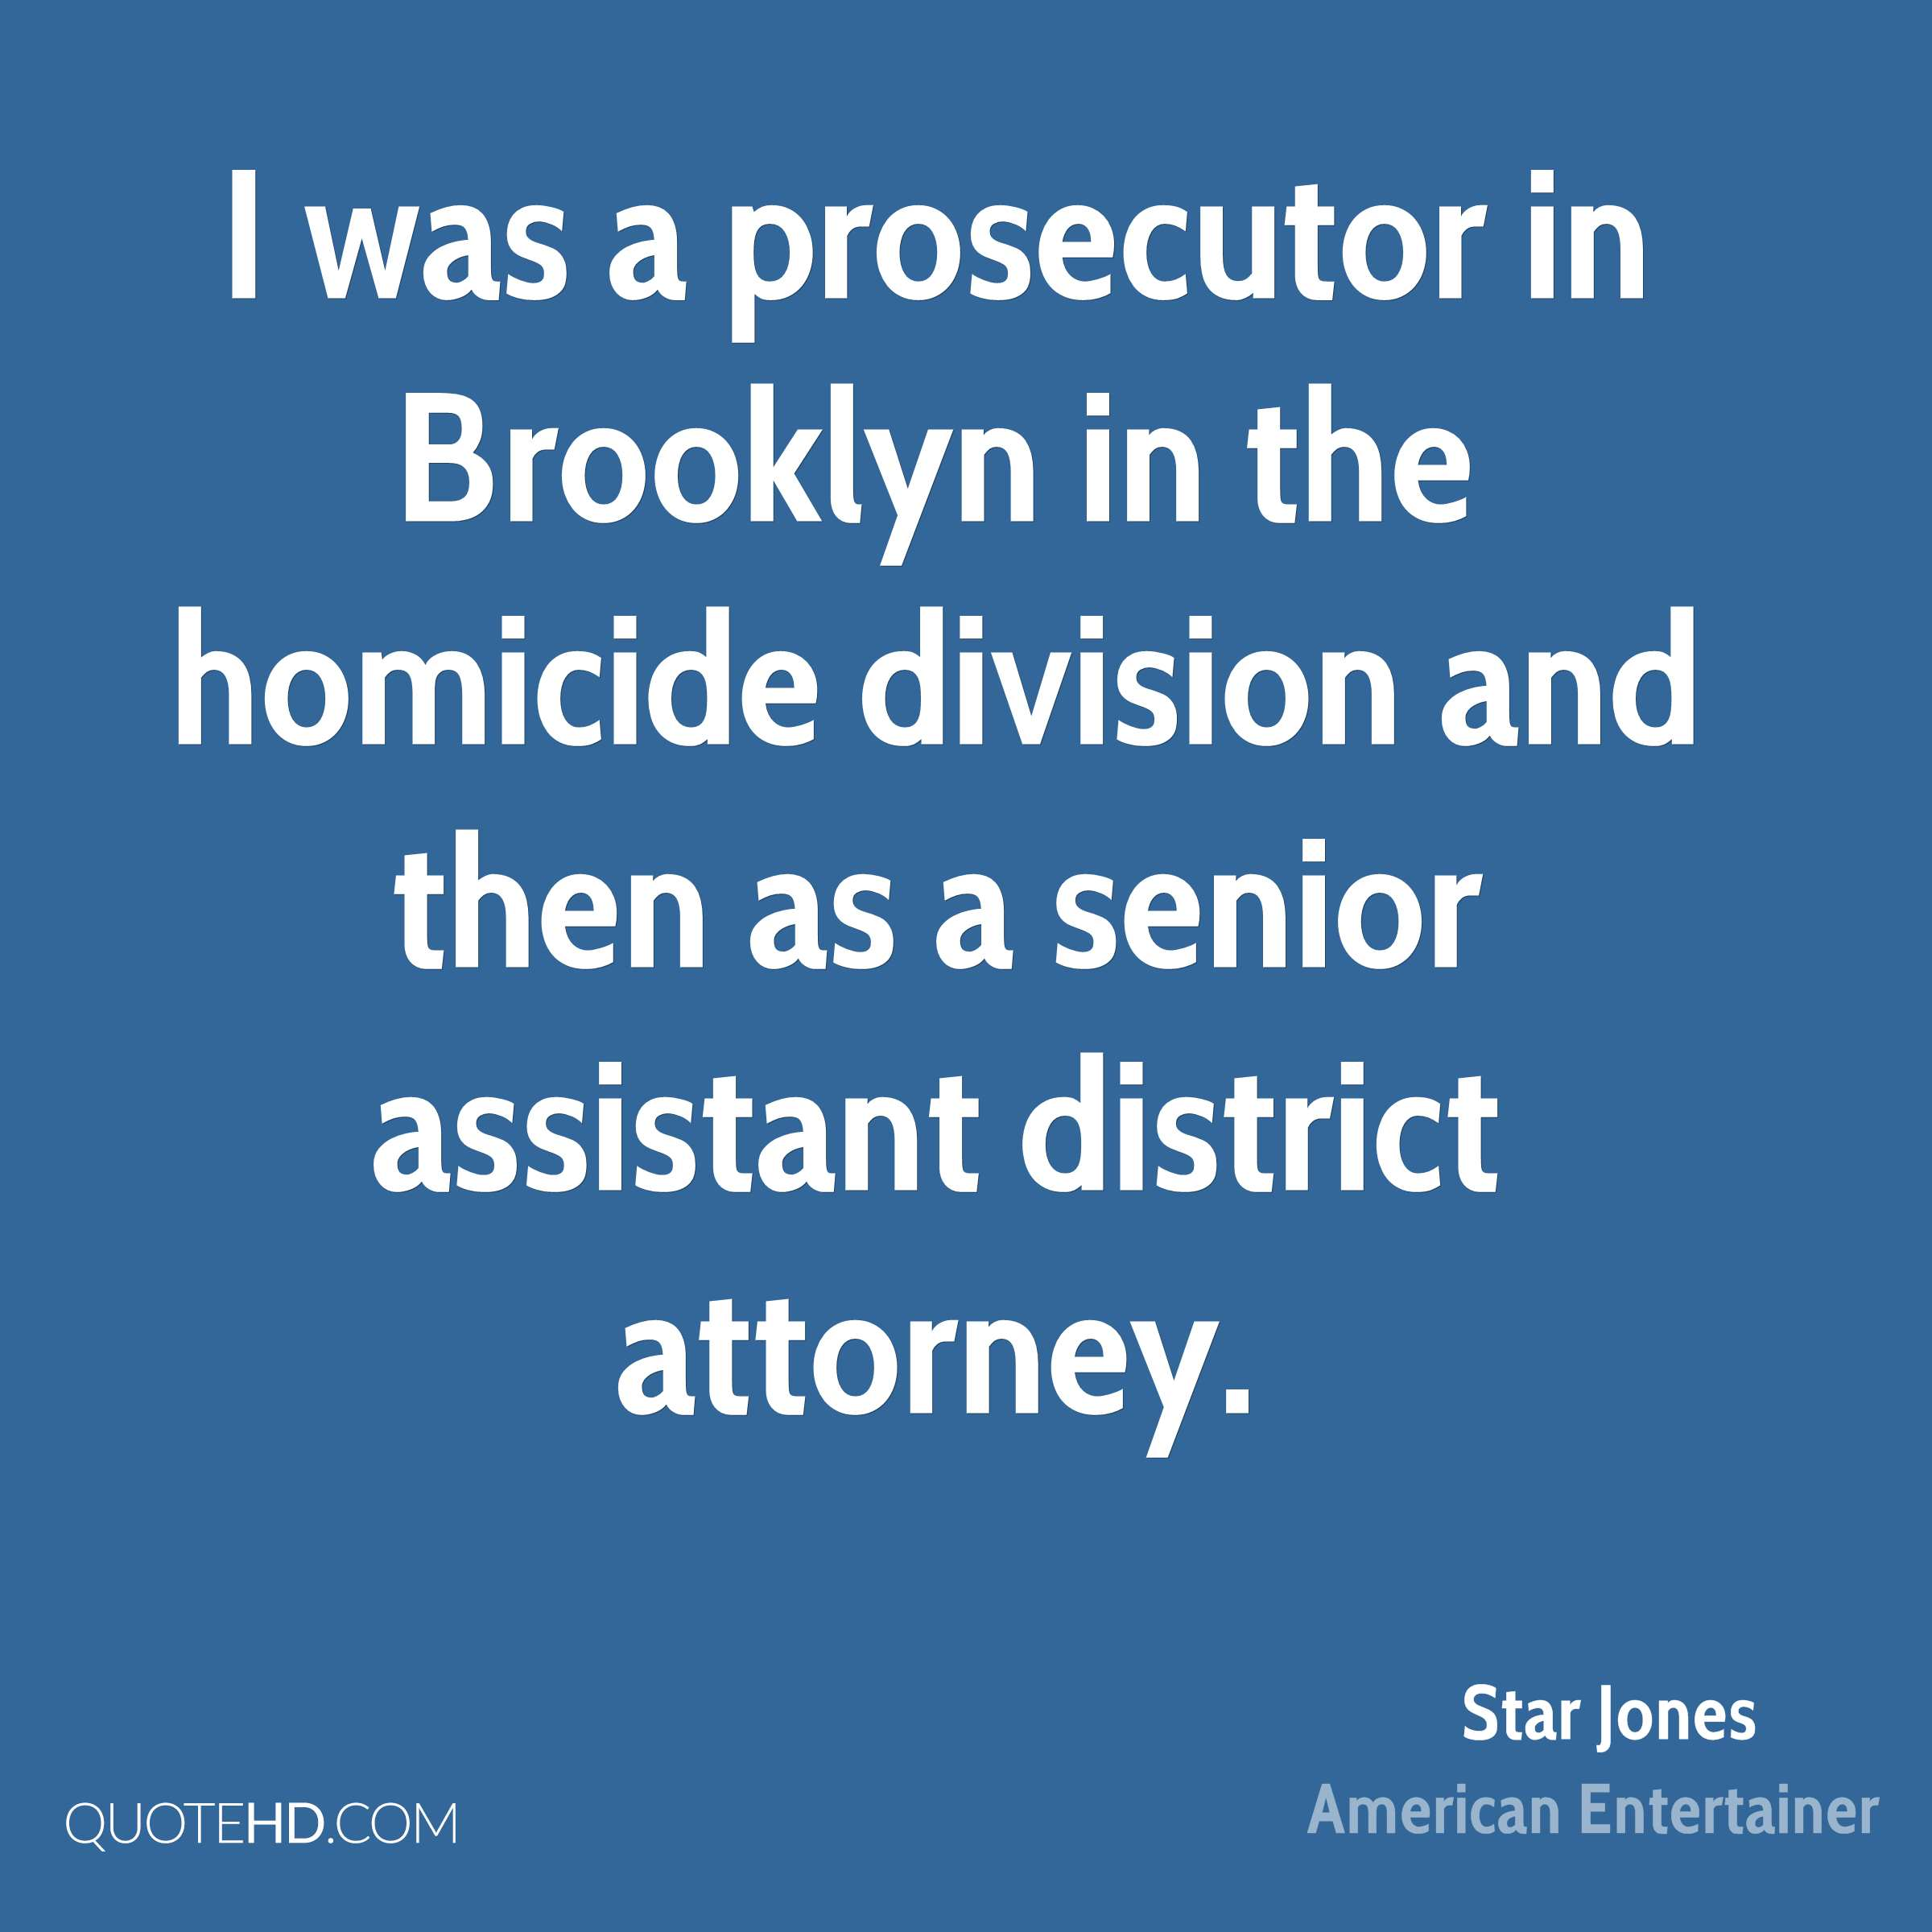 I was a prosecutor in Brooklyn in the homicide division and then as a senior assistant district attorney.